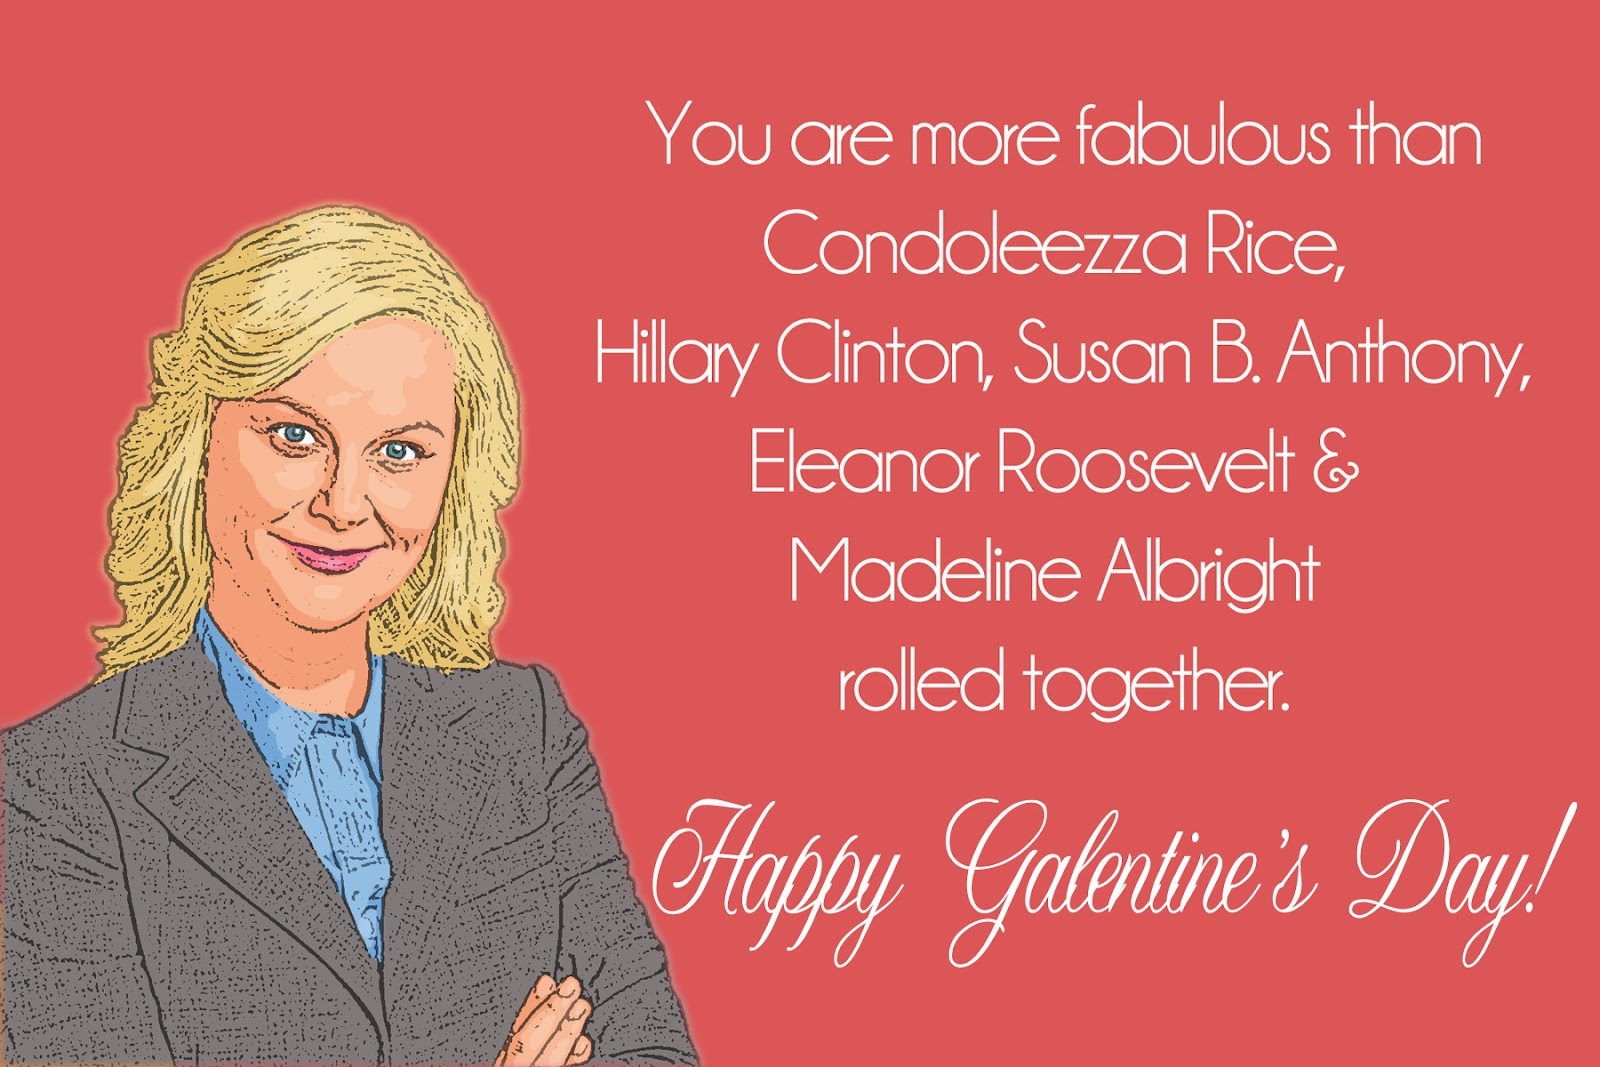 galentine's day - photo #5